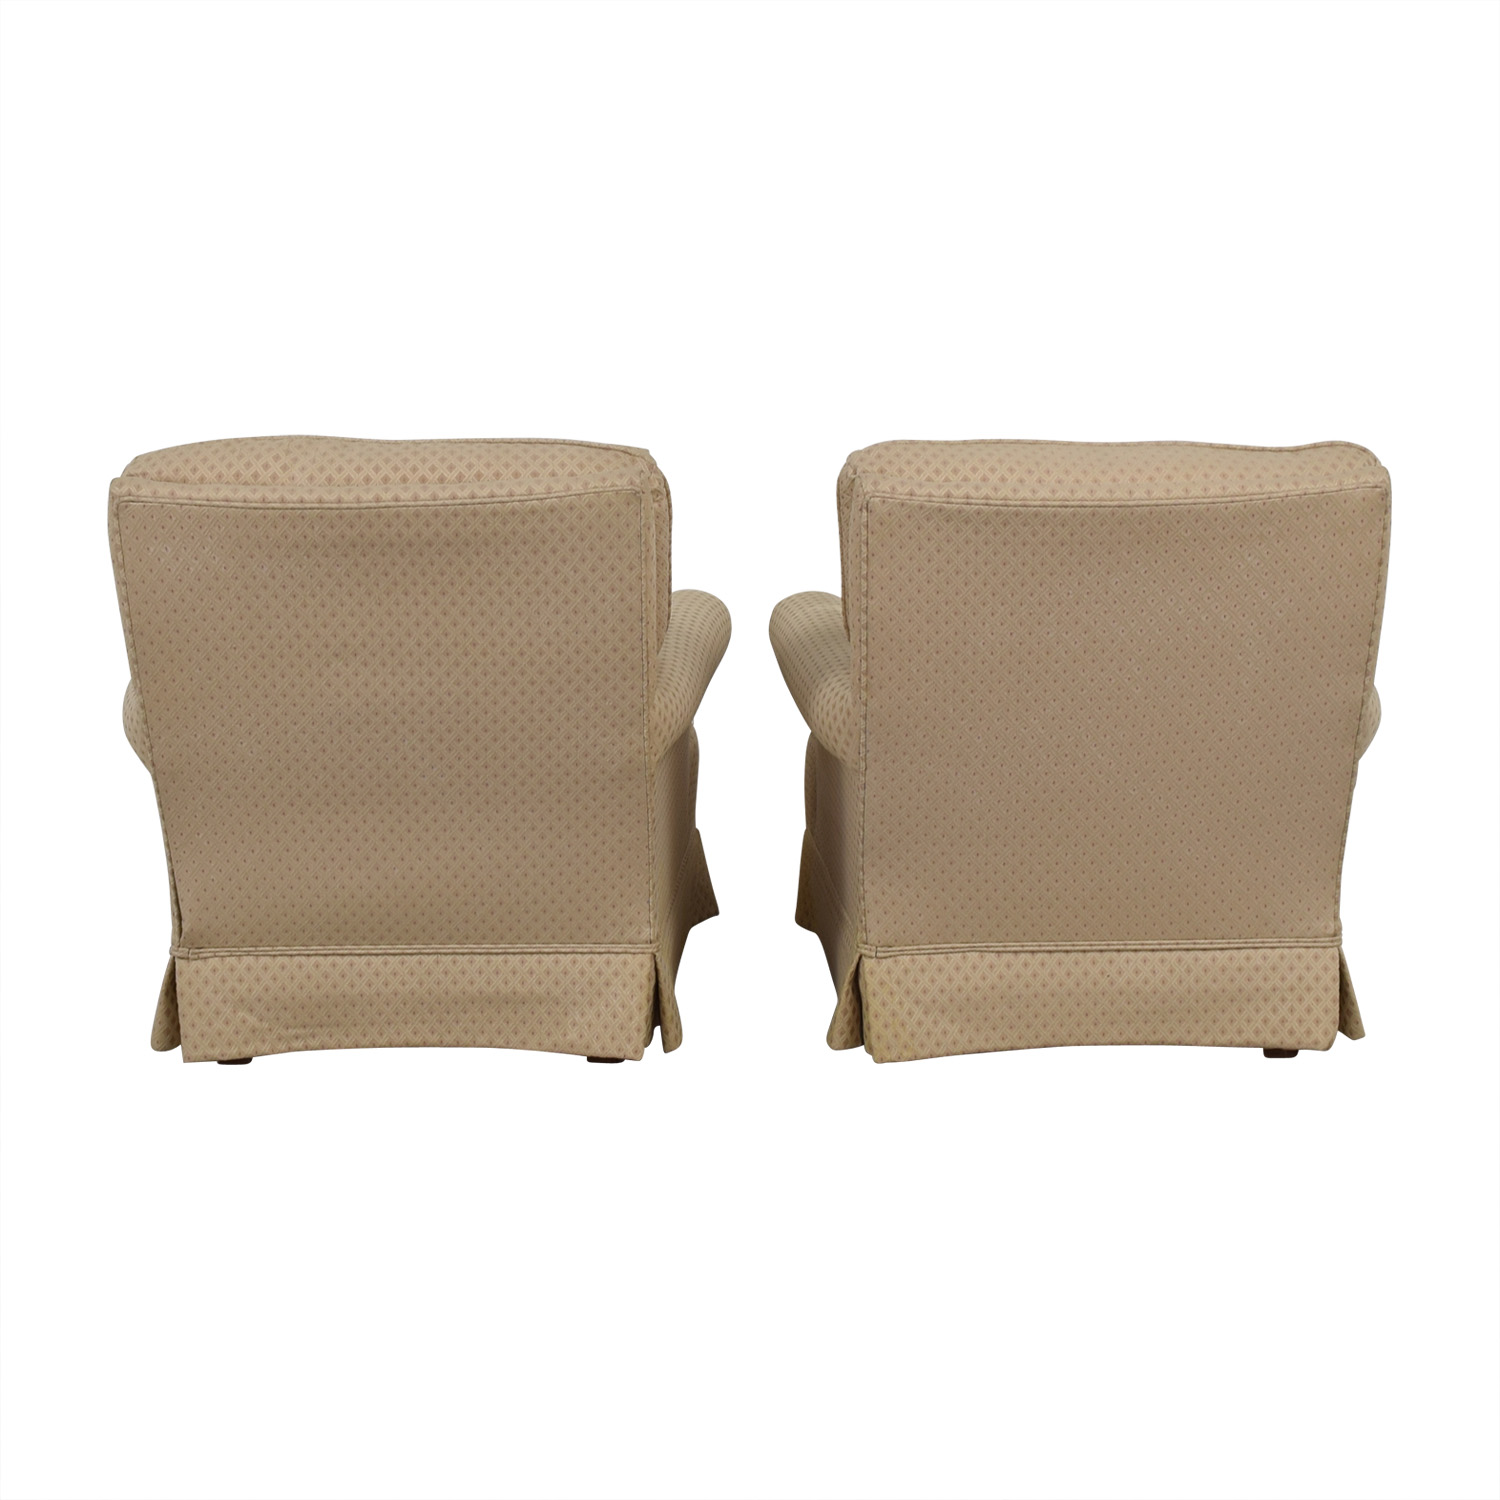 shop Broyhill Broyhill Beige Upholstered Accent Chairs online